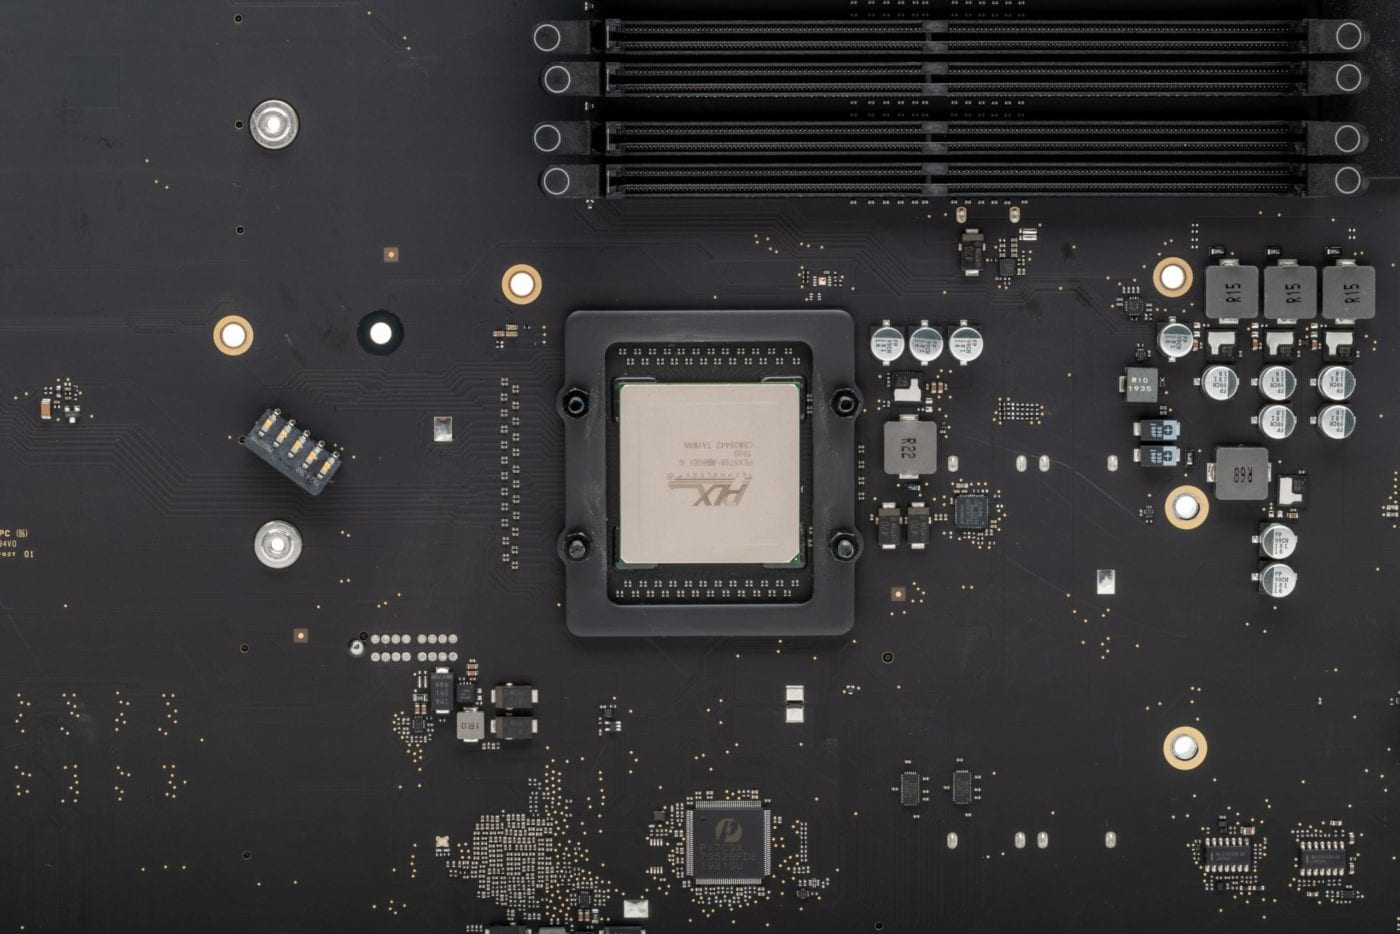 2019 Mac Pro – PLX chip with heatsink removed